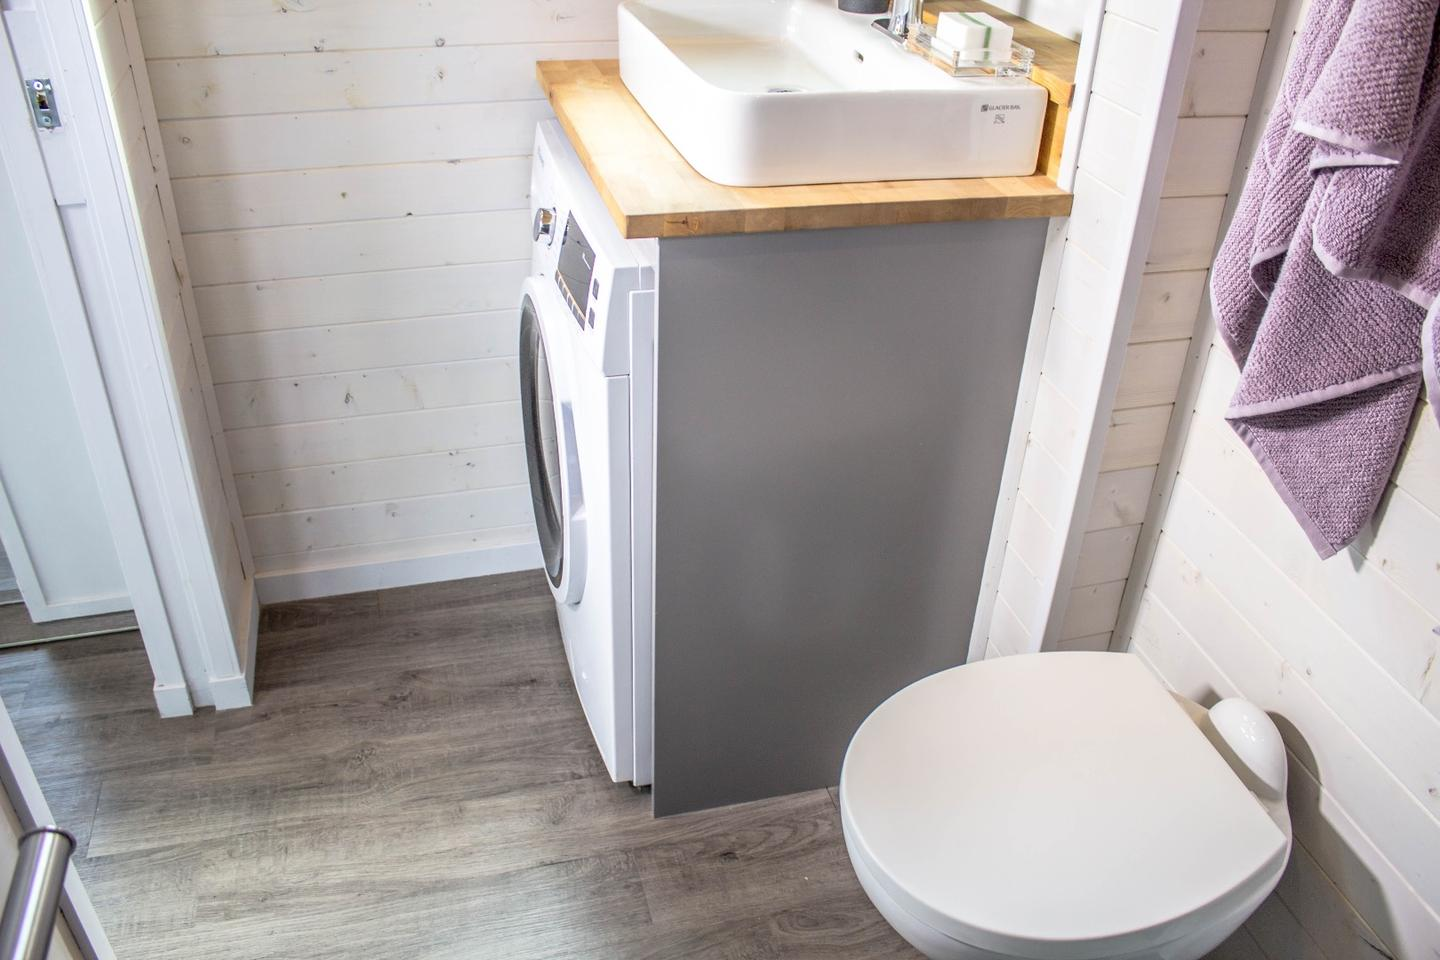 An optional washer/dryer can be installed in the Aurora's bathroom